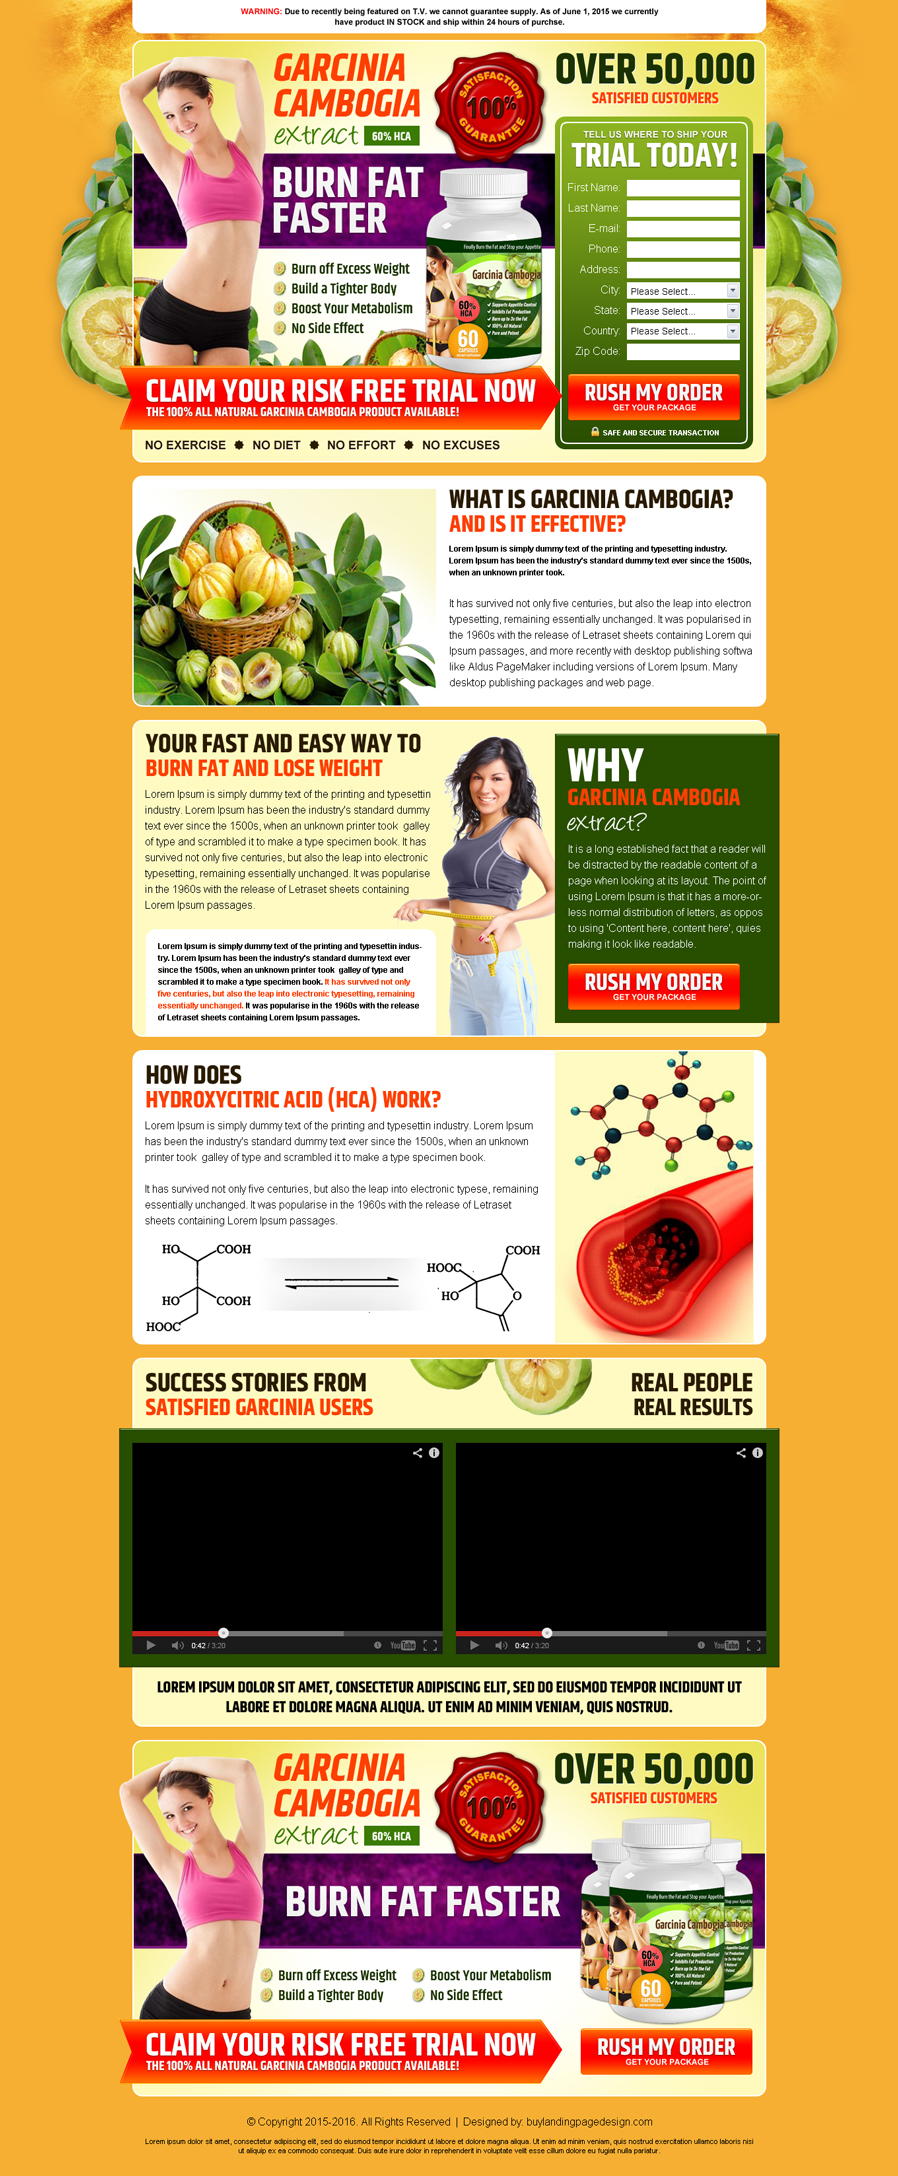 garcinia-cambogia-risk-free-trail-lead-generation-converting-landing-page-design-010